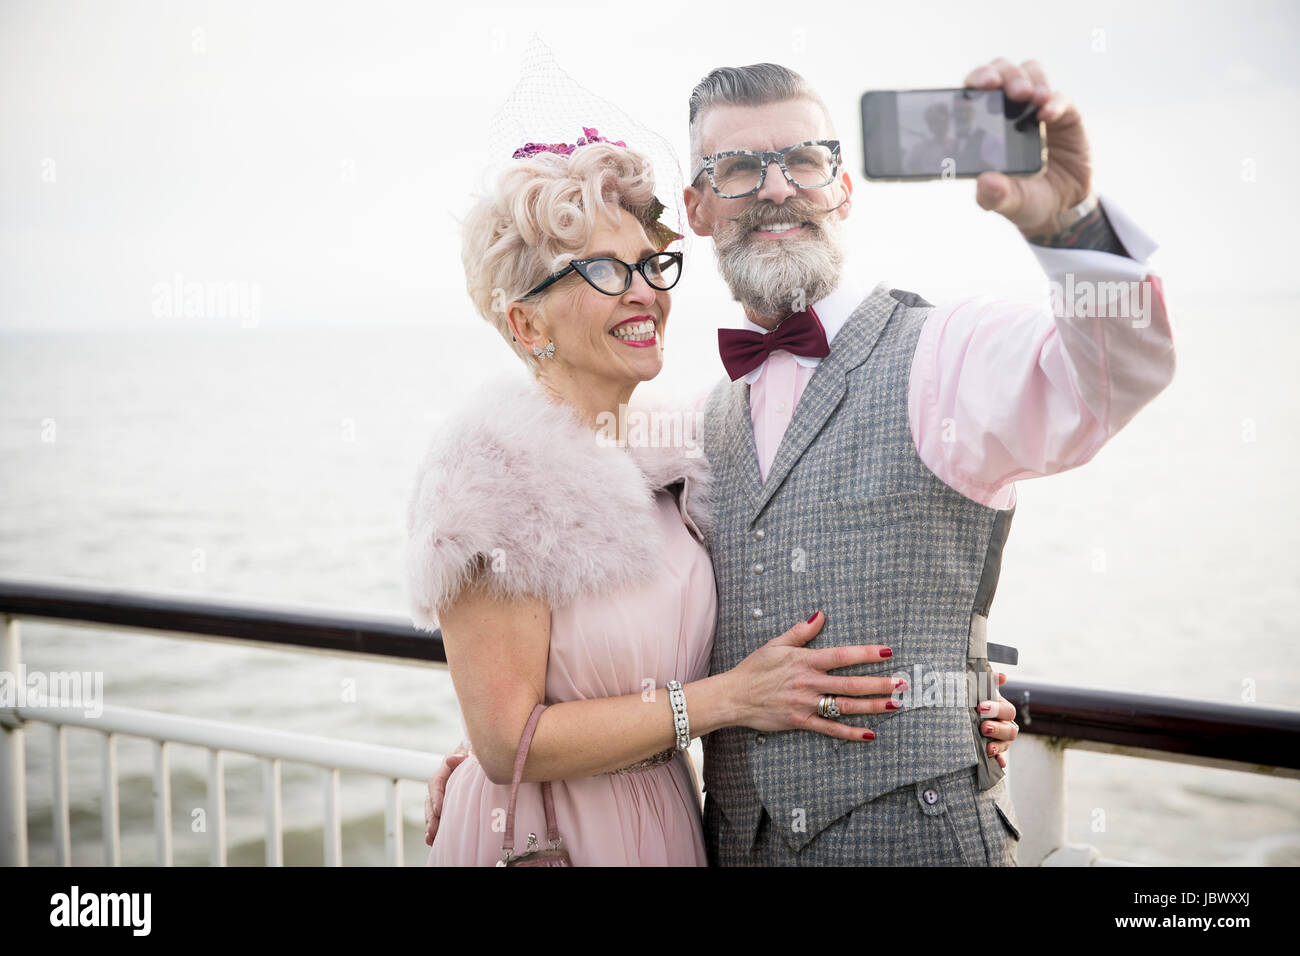 1950's vintage style couple taking smartphone selfie on pier - Stock Image